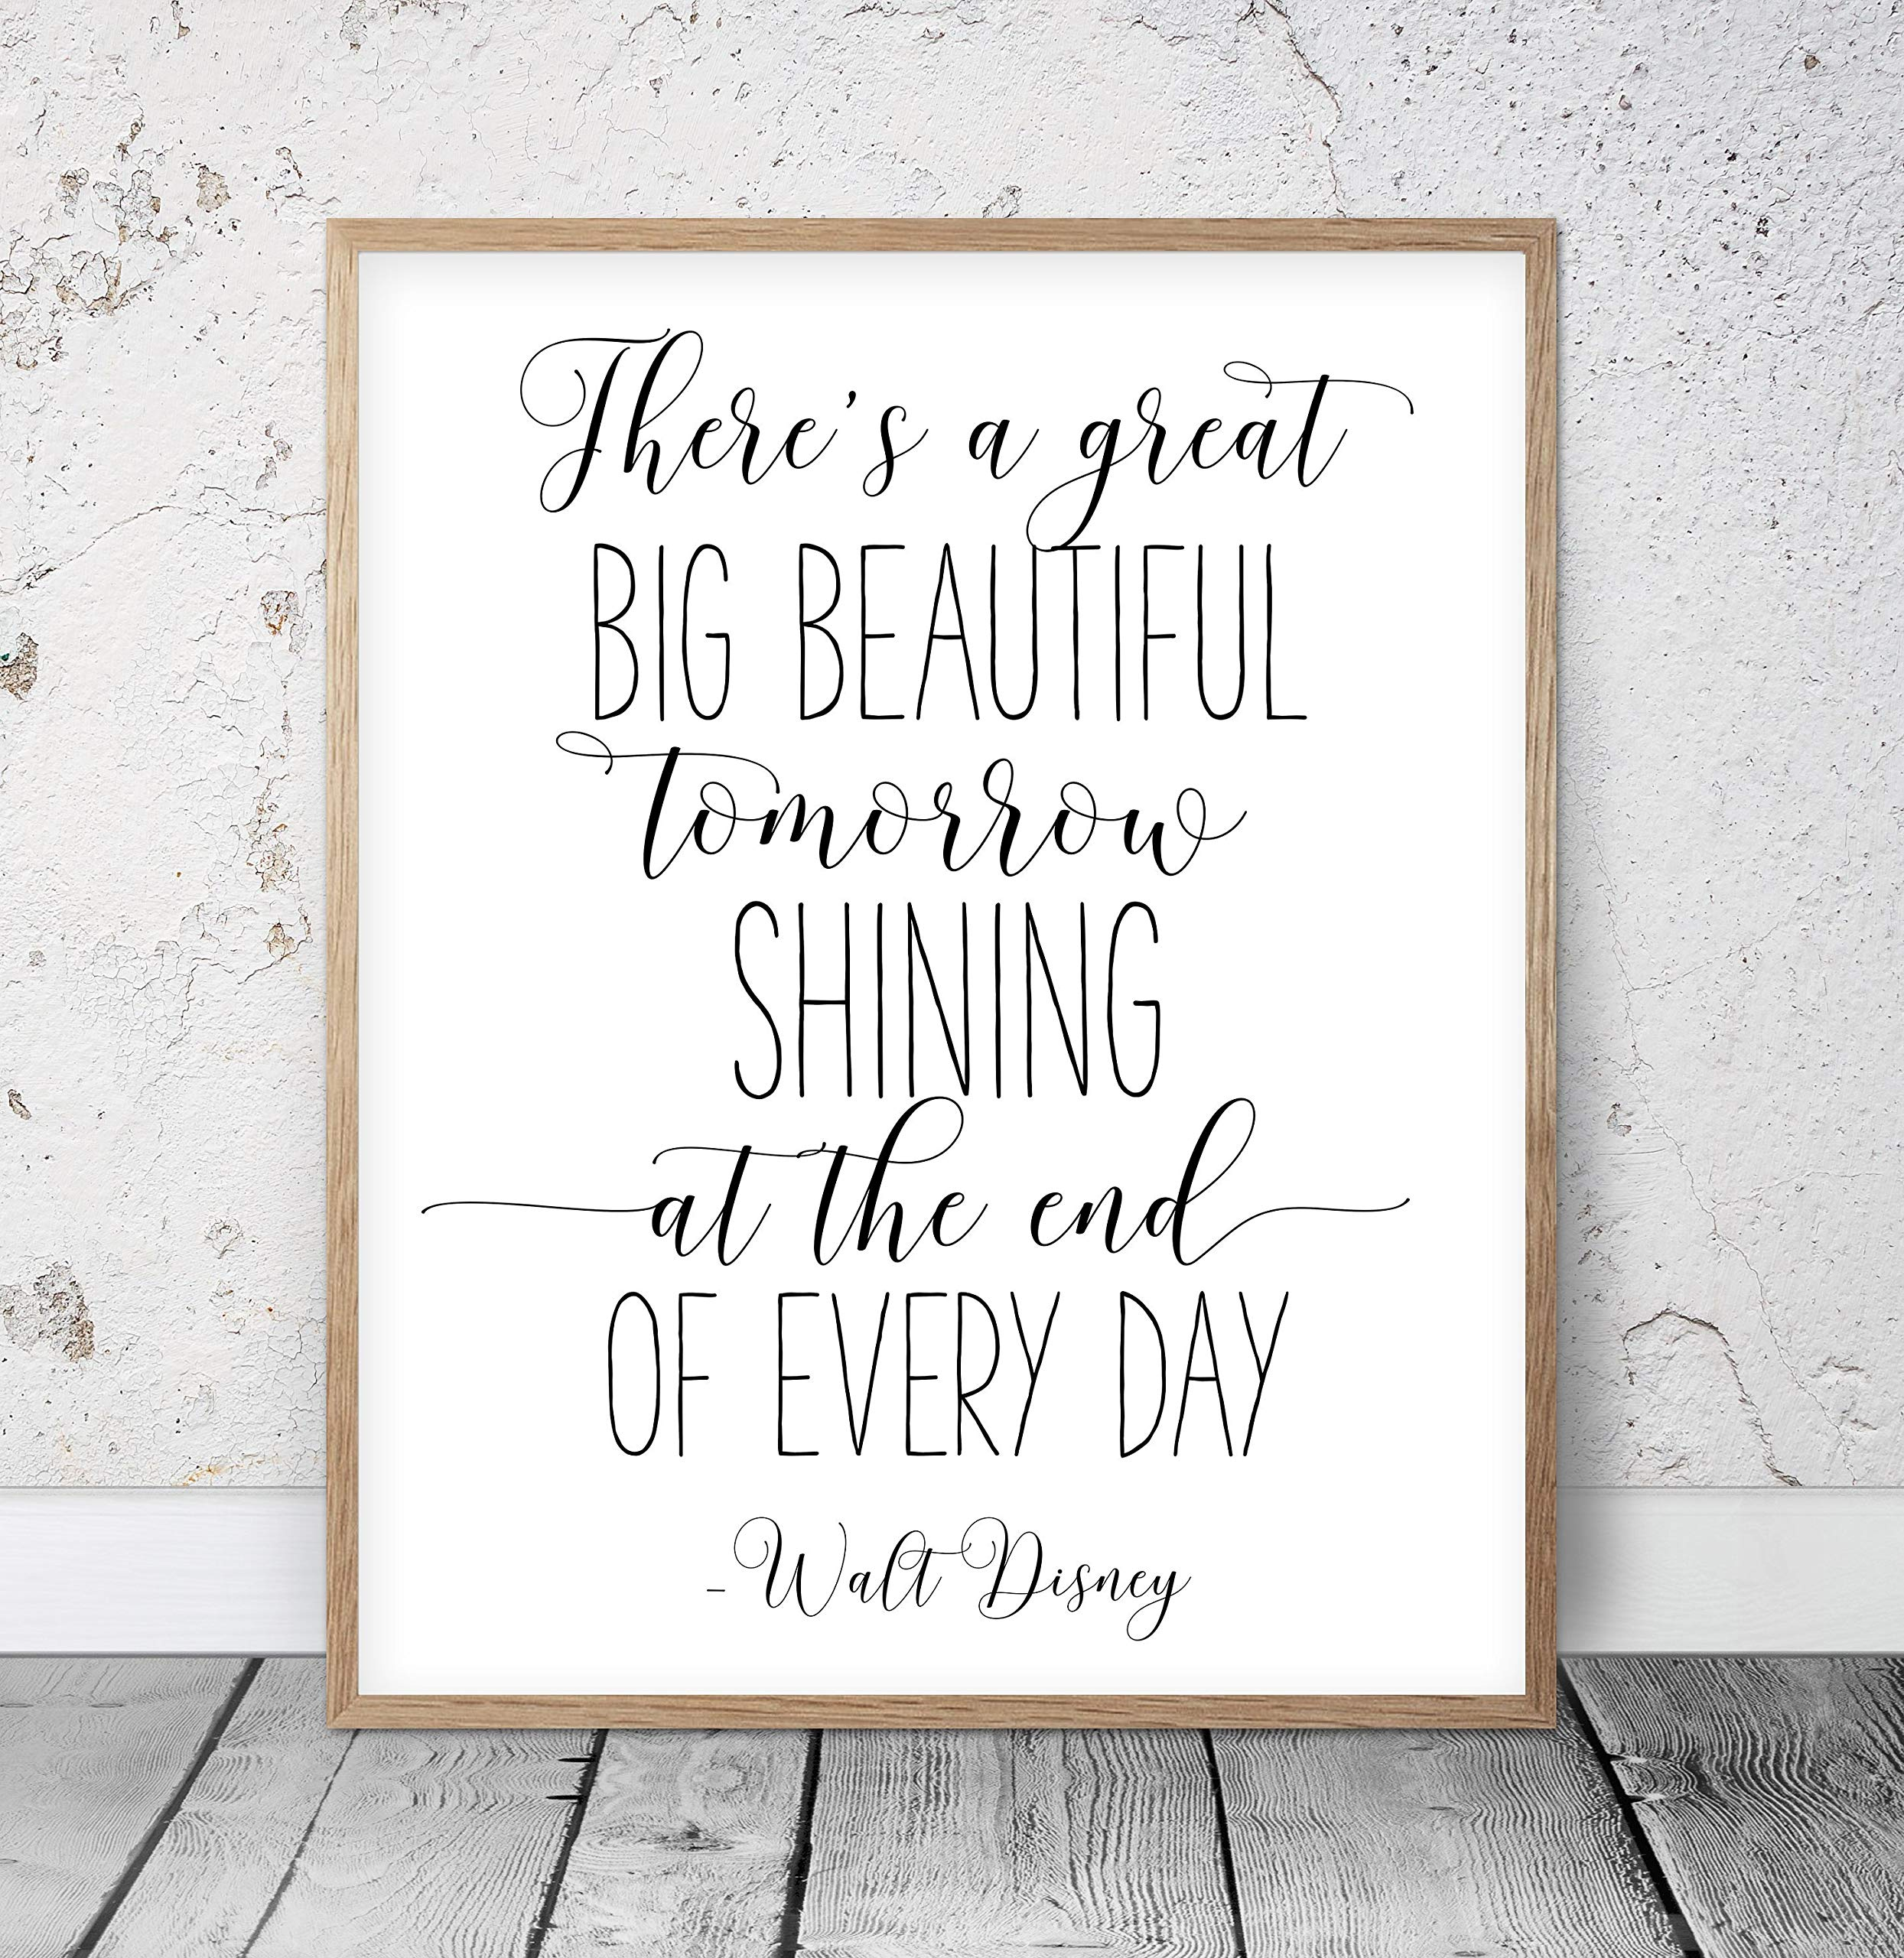 There's A Great Big Beautiful Tomorrow Shining At The End of Every Day Walt Quotes Nursery Printable Kids Room Decor Inspirational Wood Pallet Design Sign Plaque with Frame wooden sign